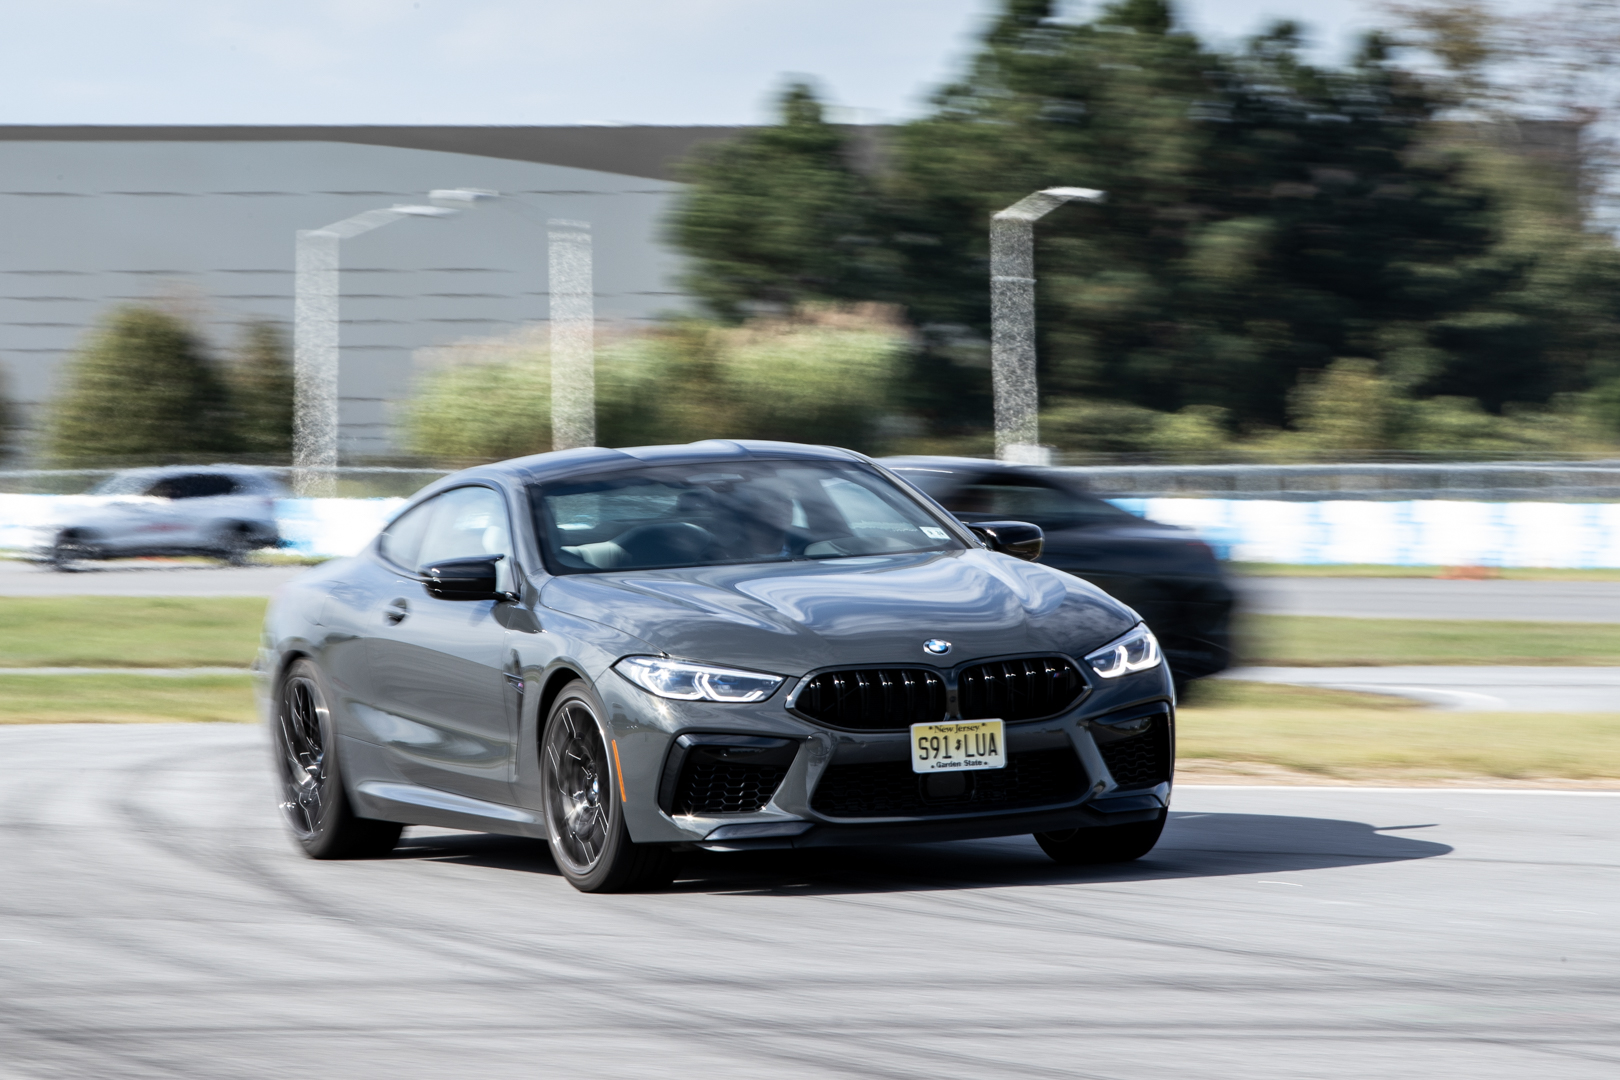 BMW M8 Spartanburg 4 of 6